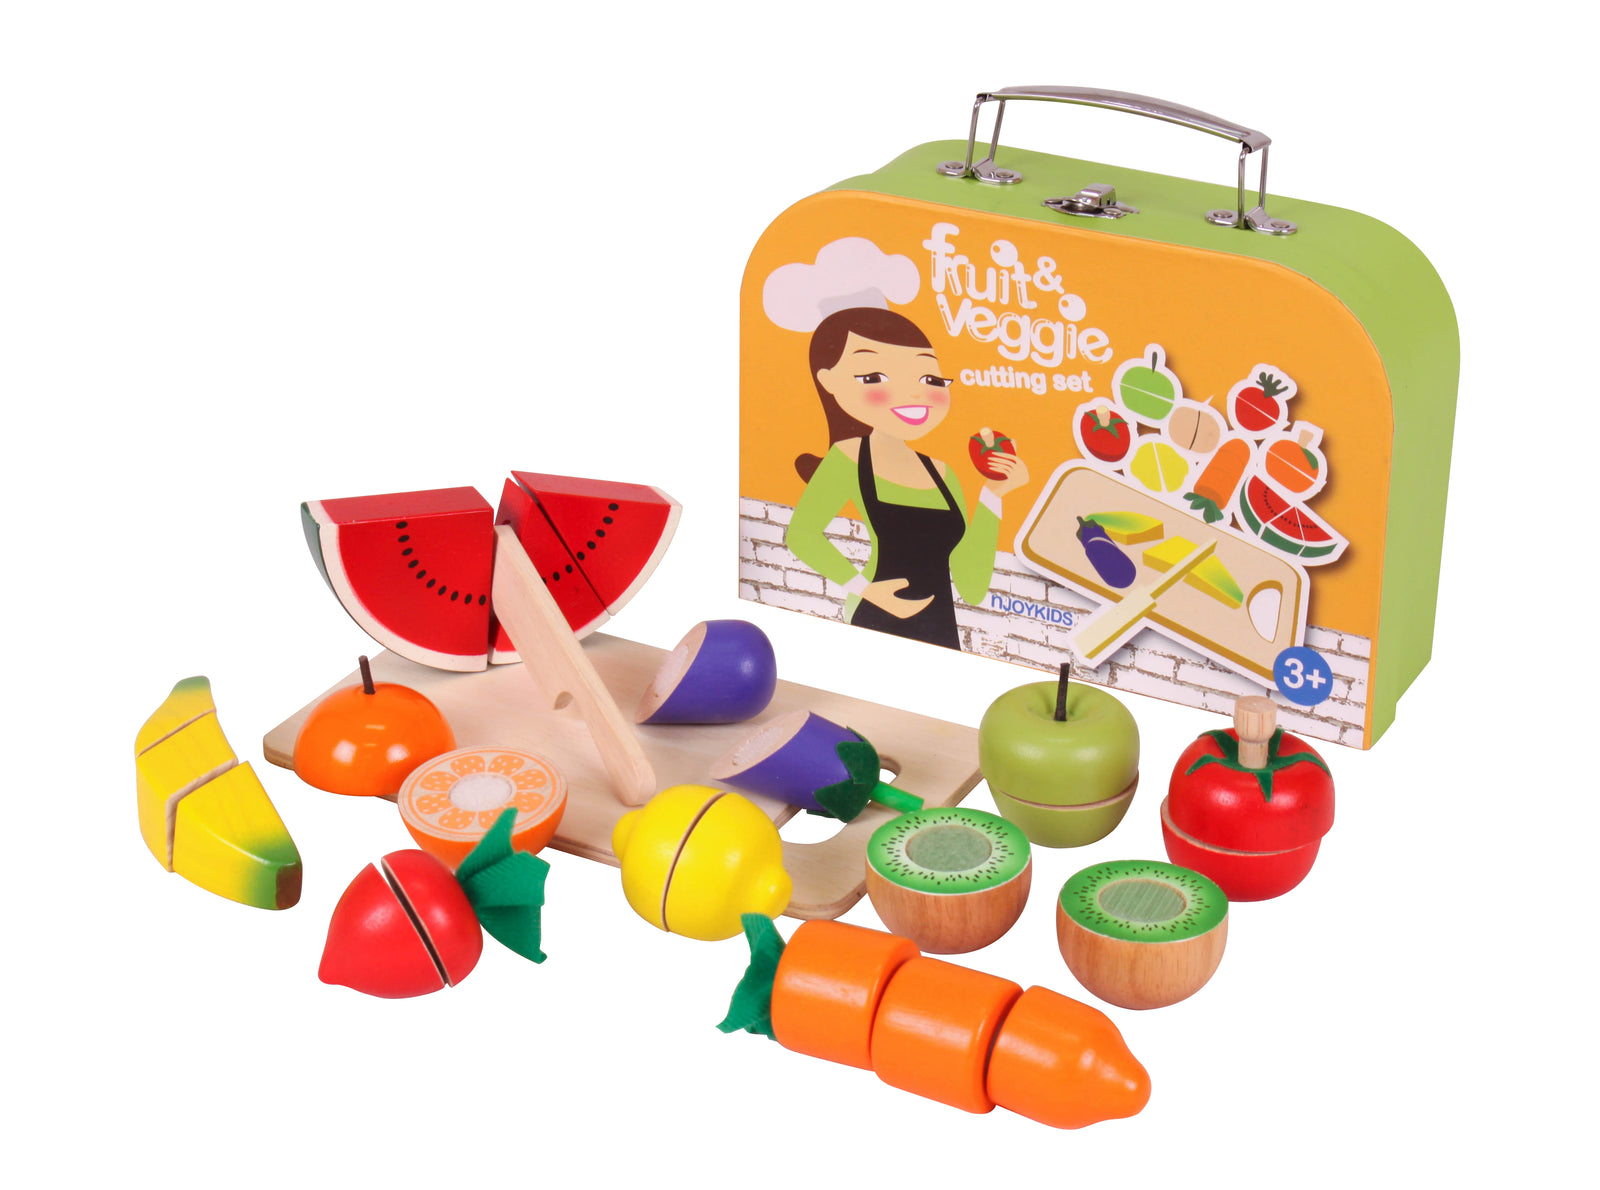 Fruits and Veggies Cutting Set